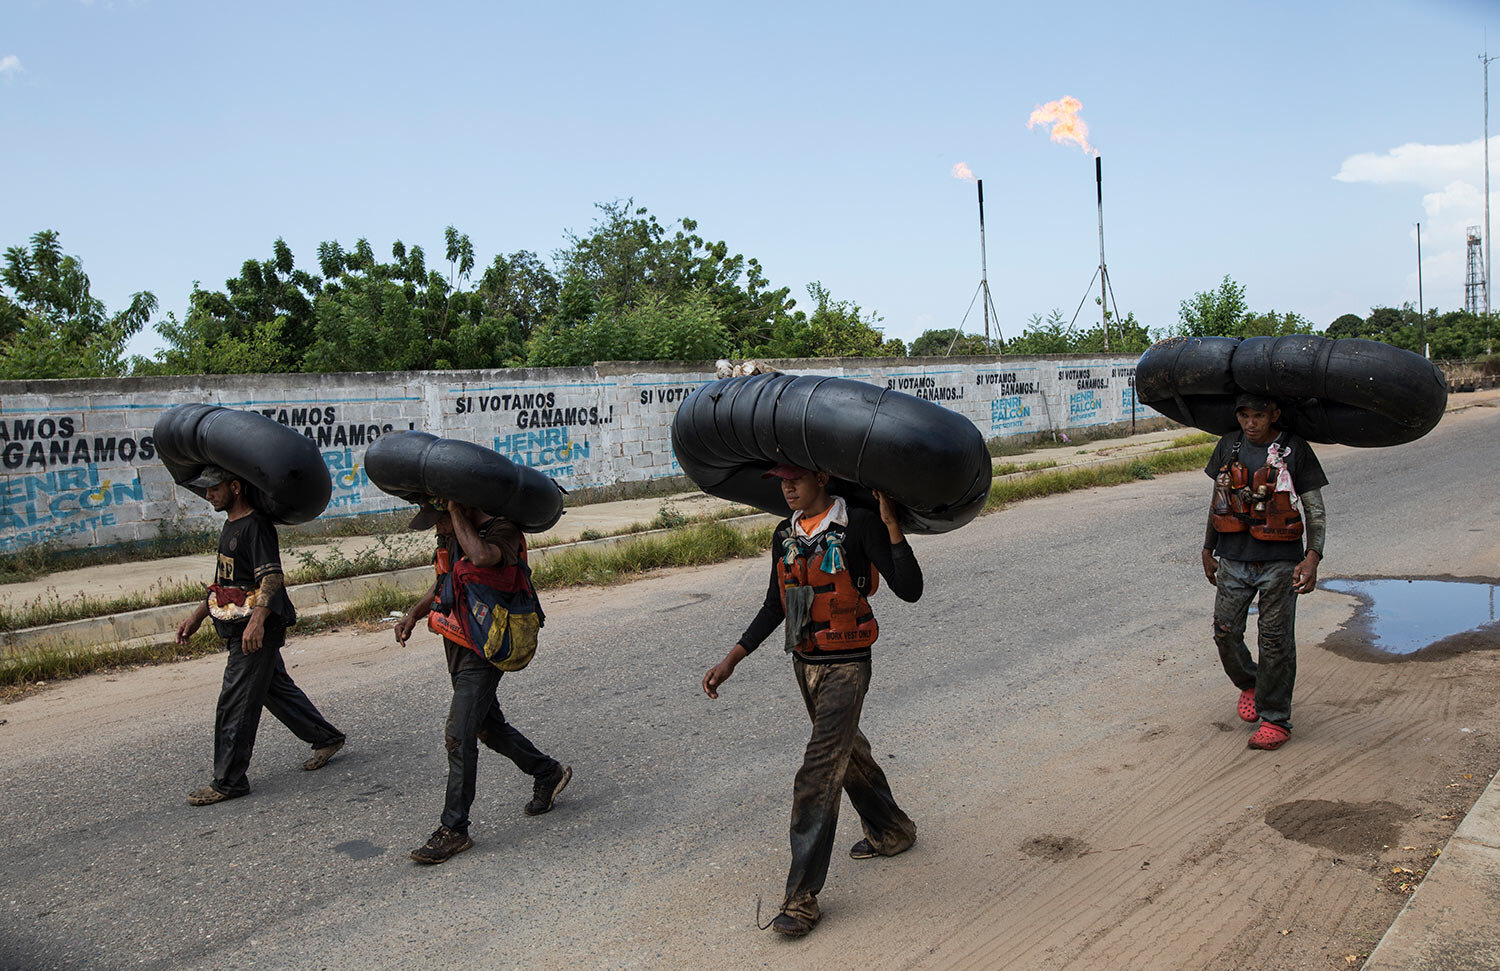 Oil-covered fishermen carry home the truck tire inner tubes they use to float on and fish from on Lake Maracaibo in Cabimas, Venezuela, July 12, 2019. (AP Photo/Rodrigo Abd)